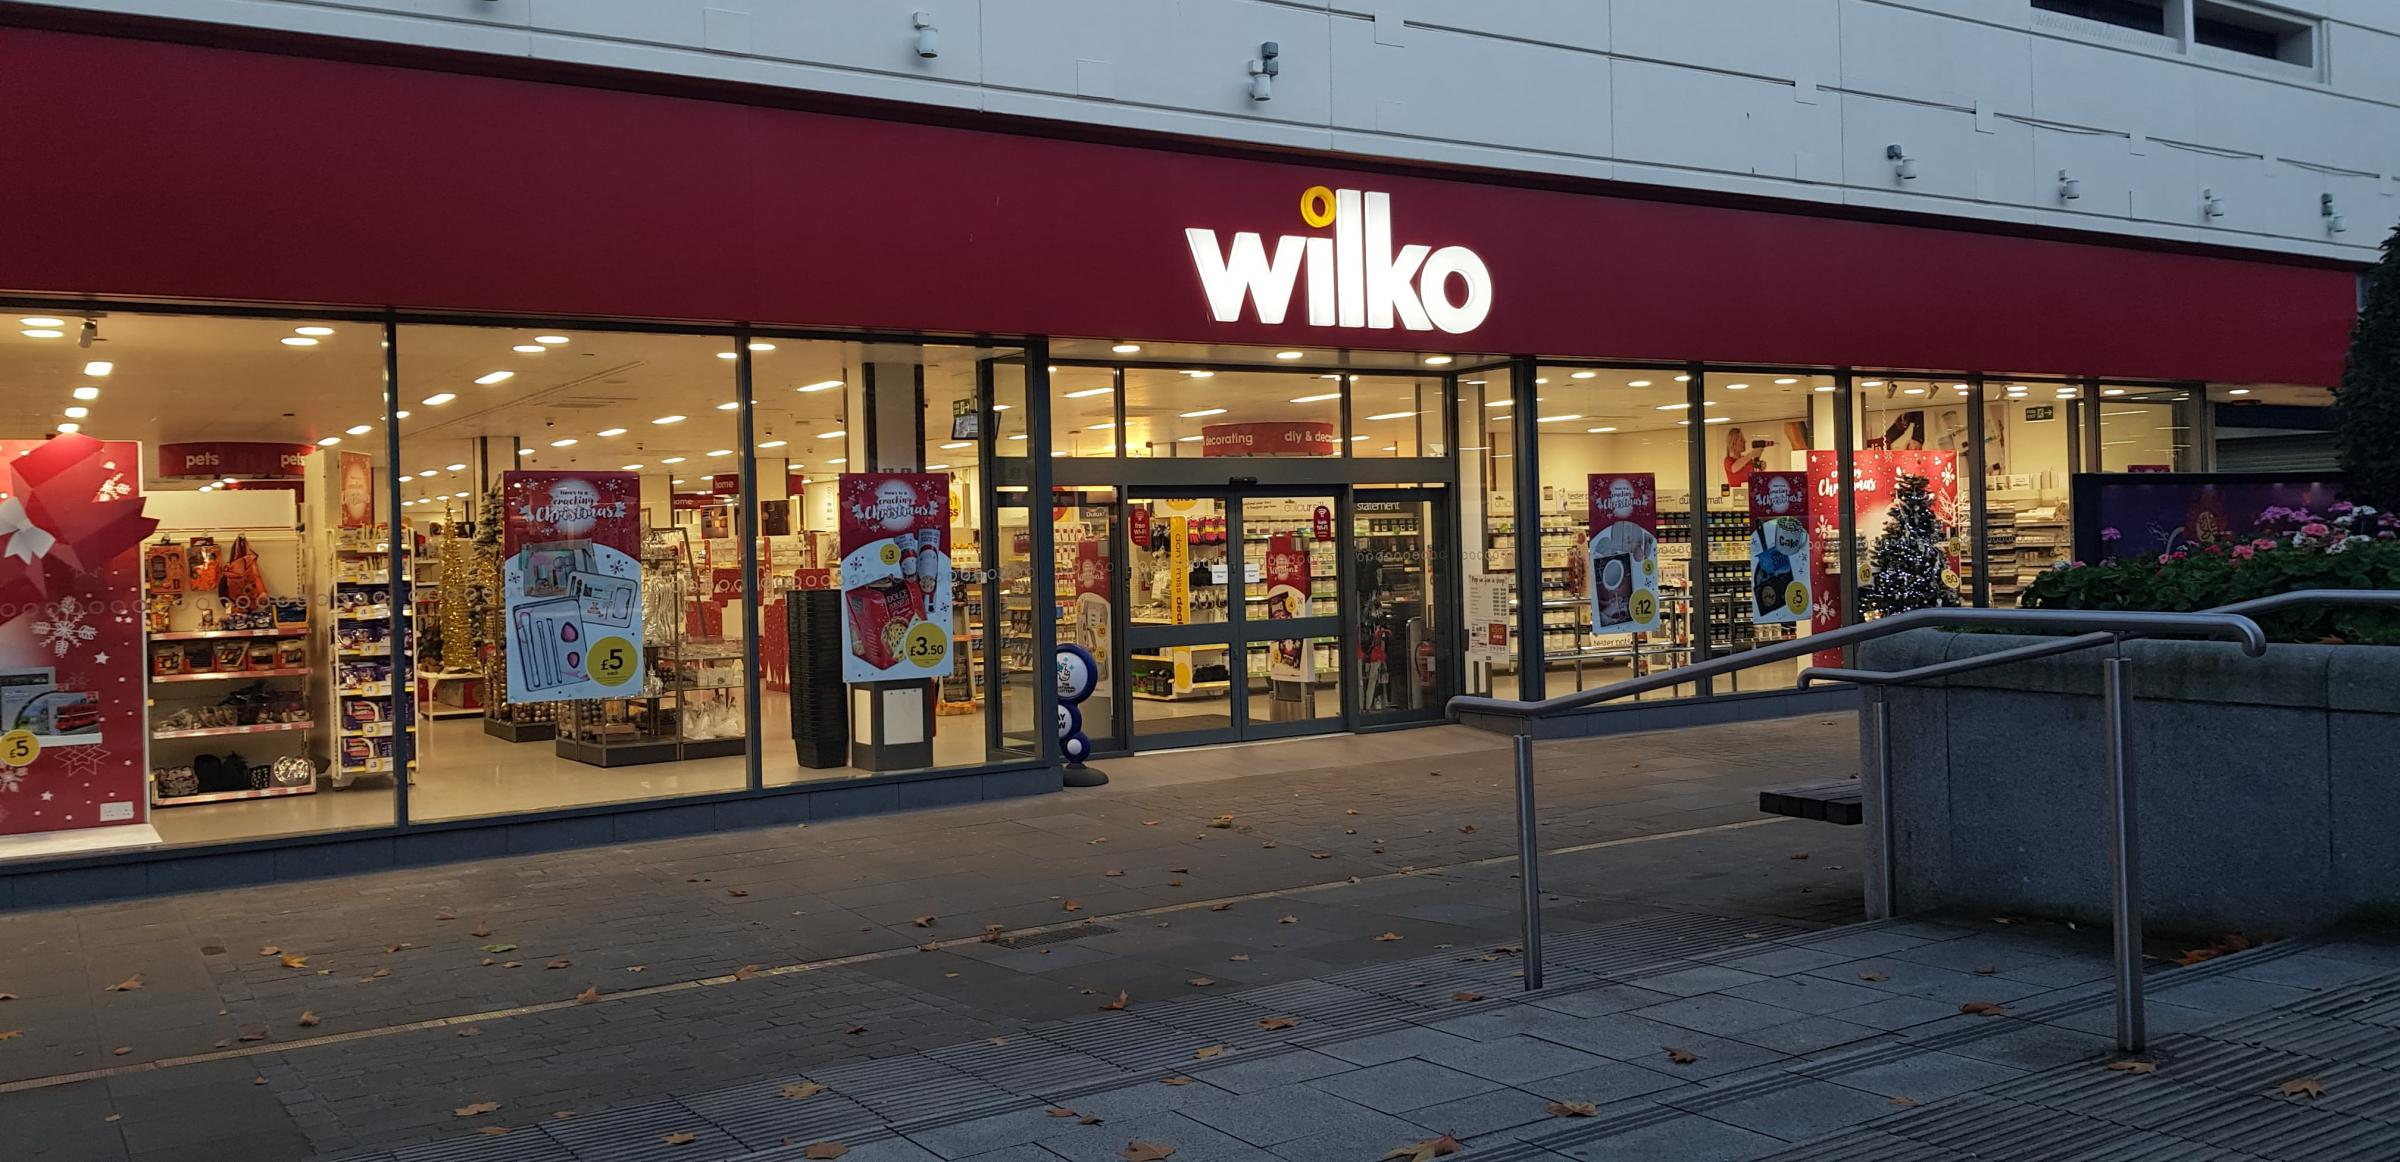 Officers were seen pouring water into the man's face outside Wilko in King William Street, Blackburn